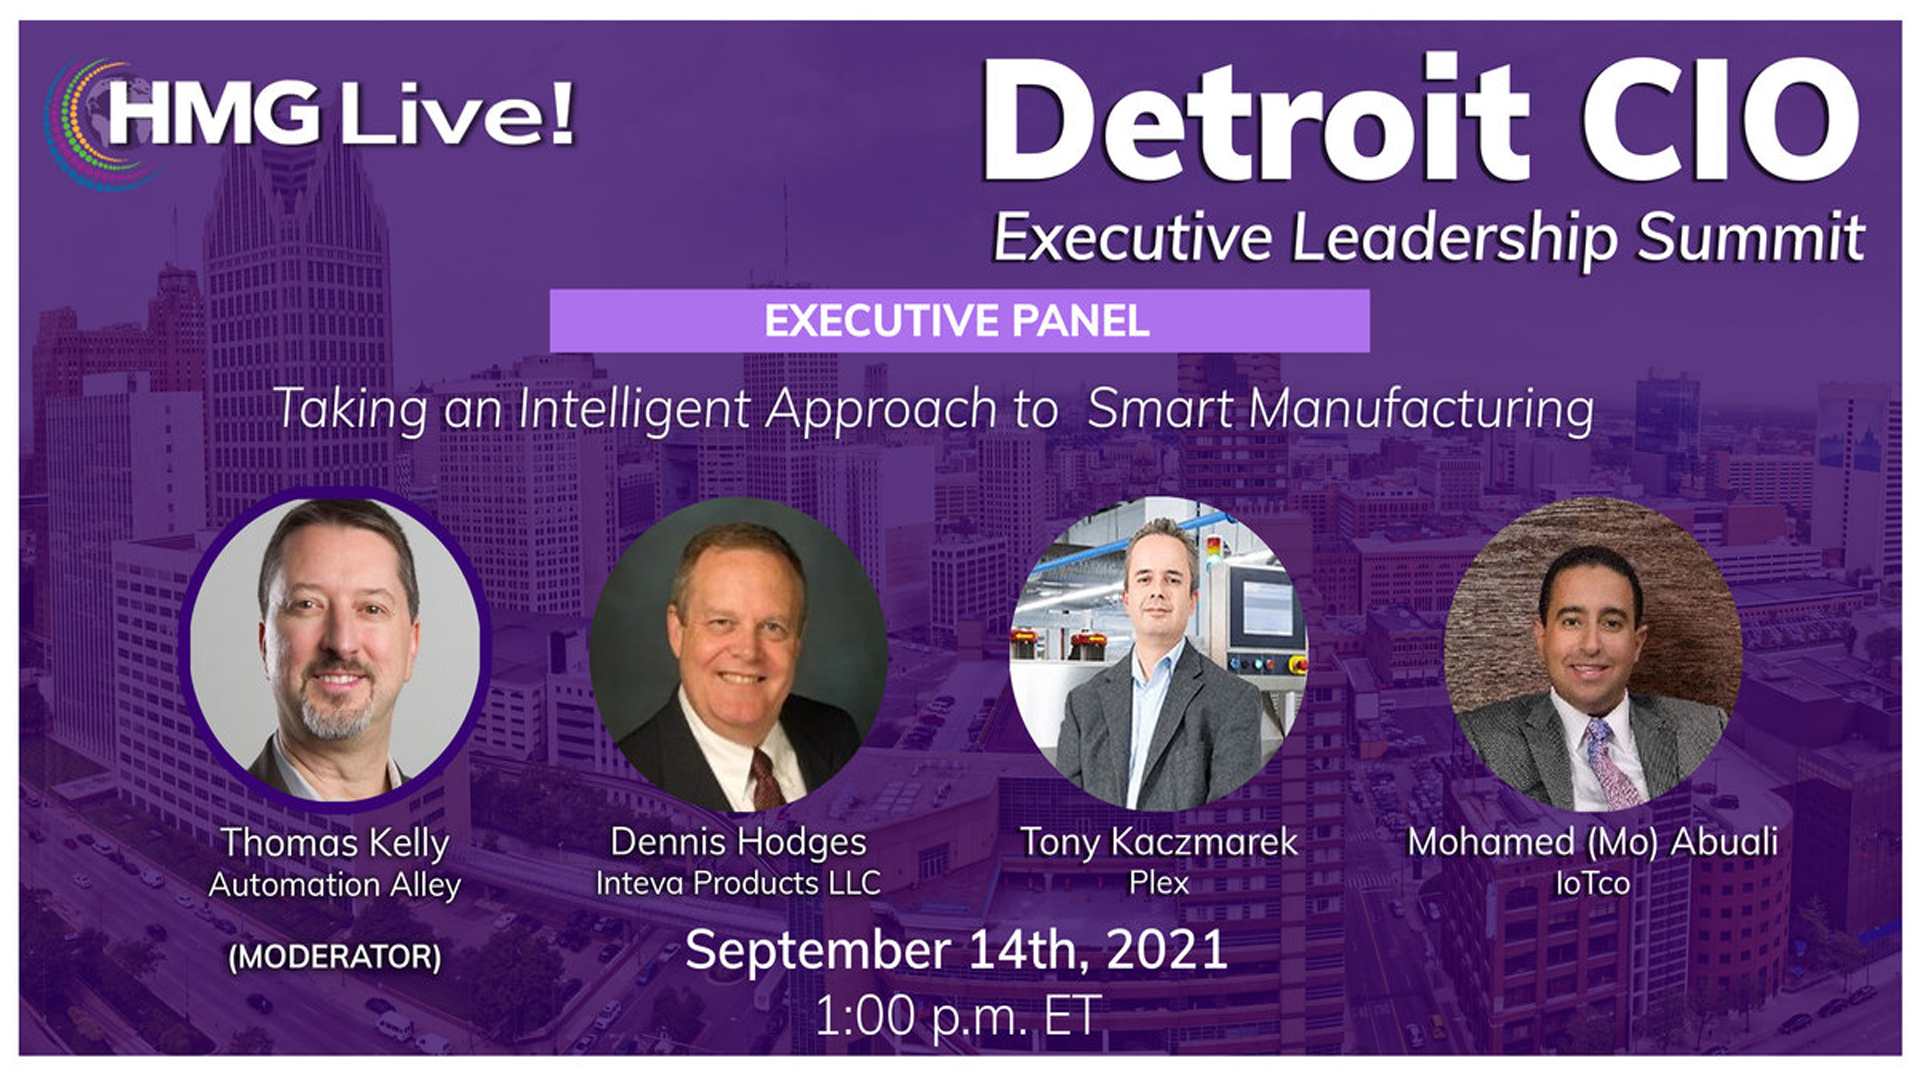 Automation Alley CEO to speak, moderate at 2021 Detroit CIO Executive Leadership Summit